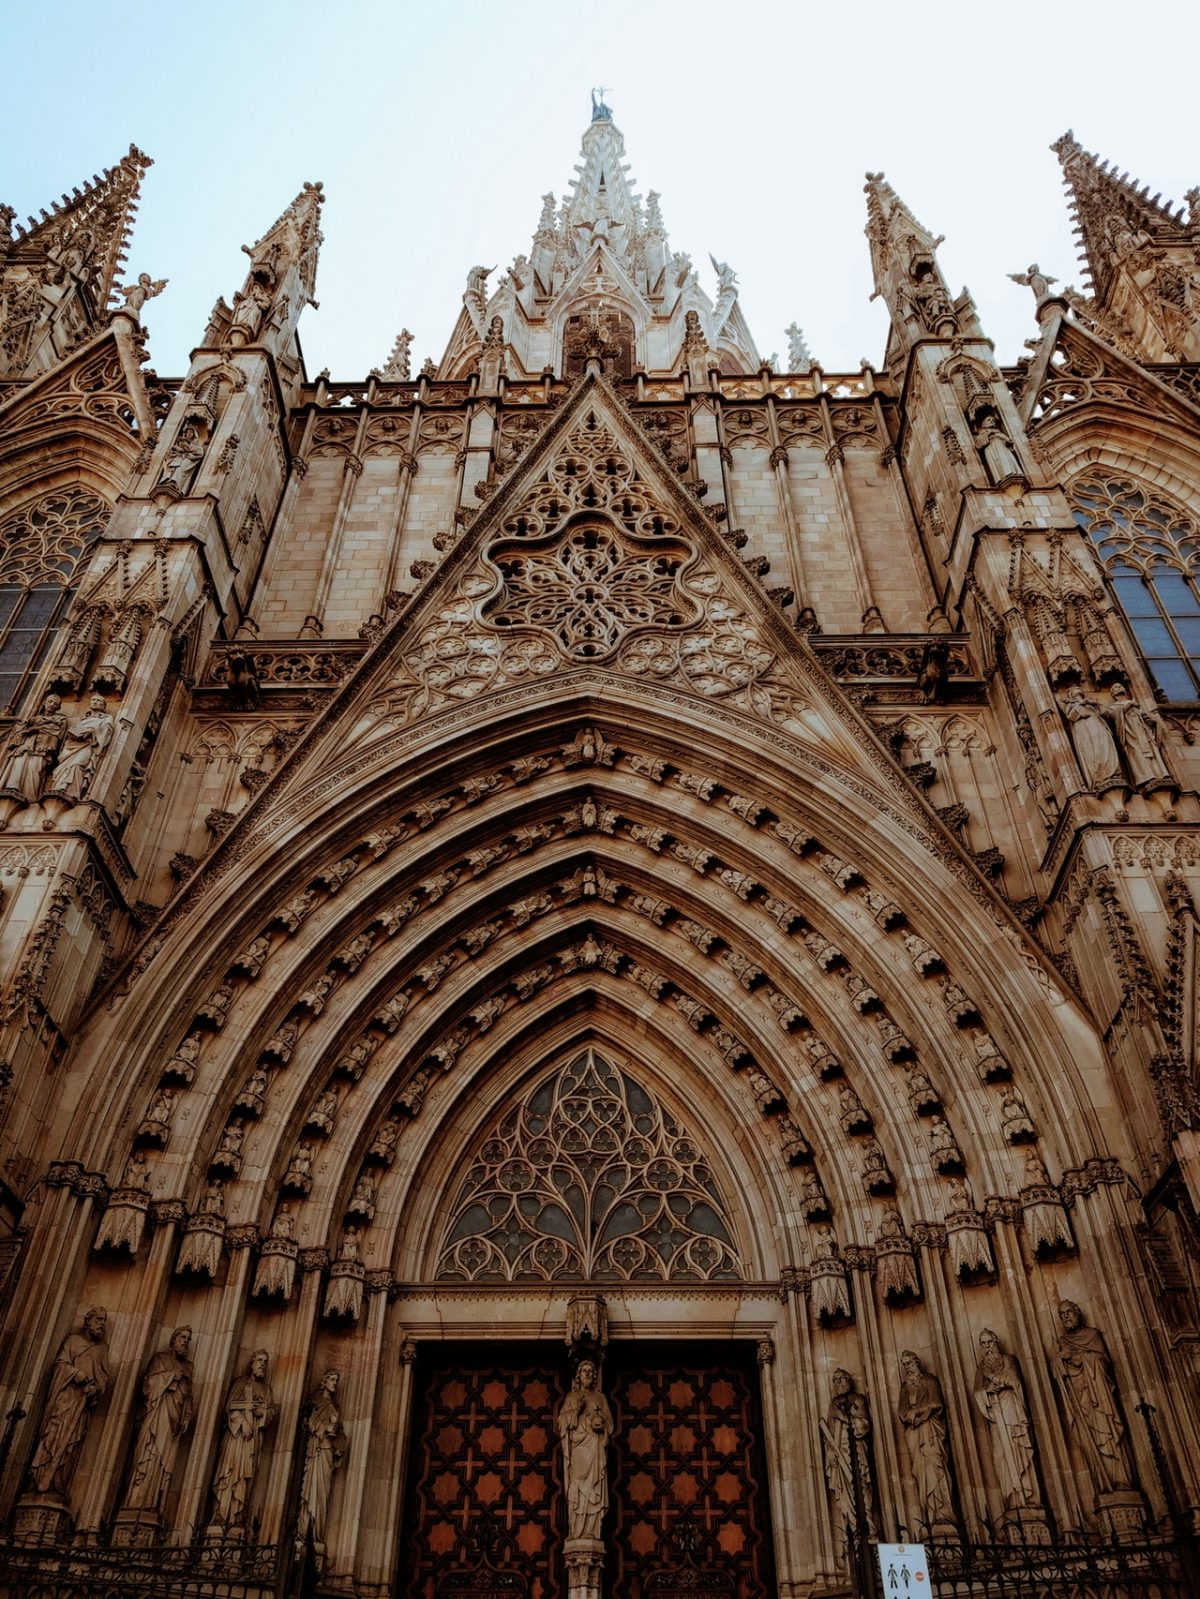 Majestic image of the Barcelona Cathedral